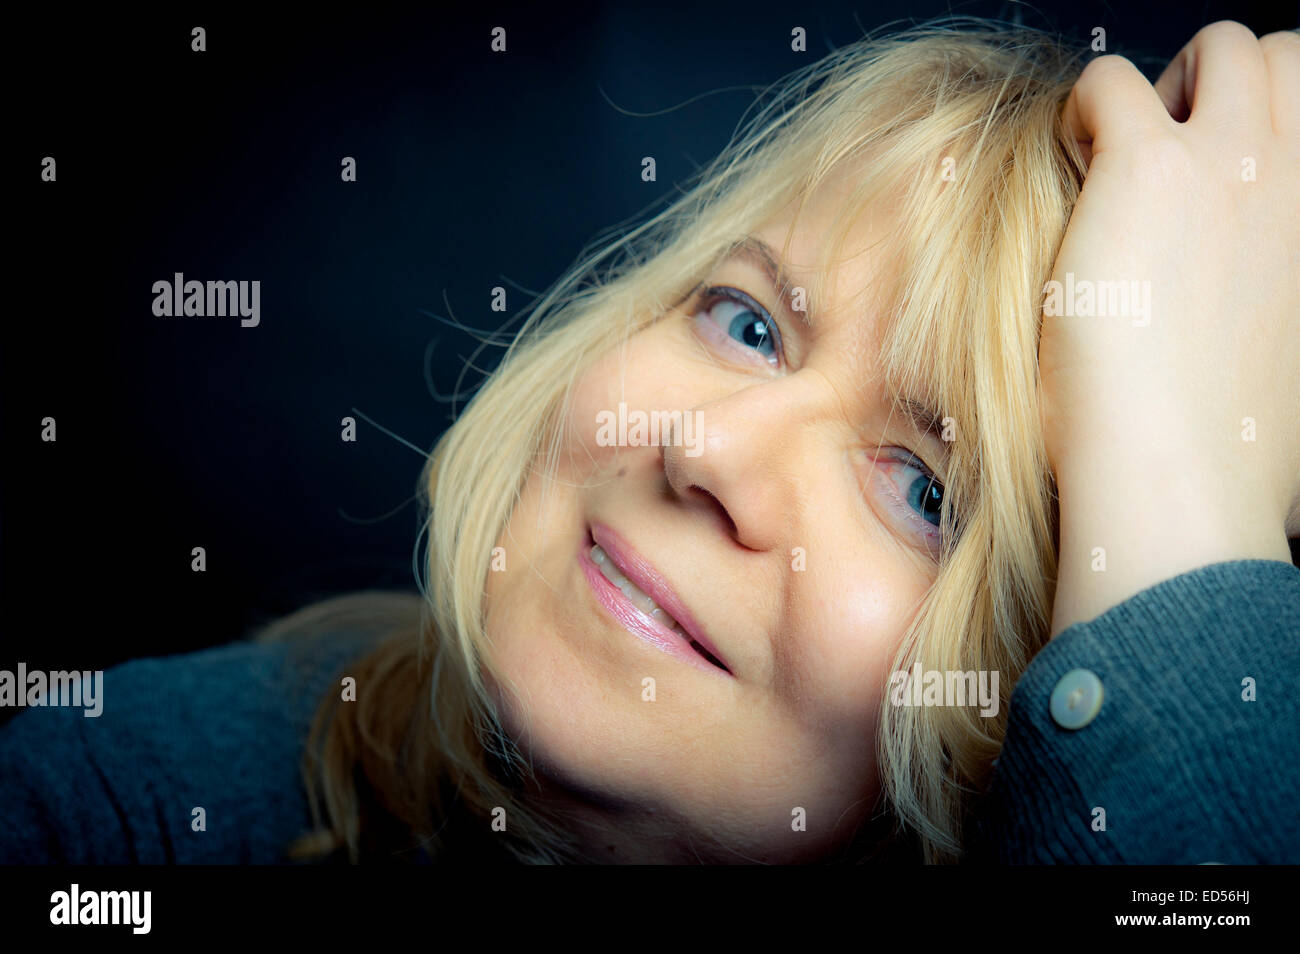 portrait blond woman in her forties, happy and satisfied - Stock Image